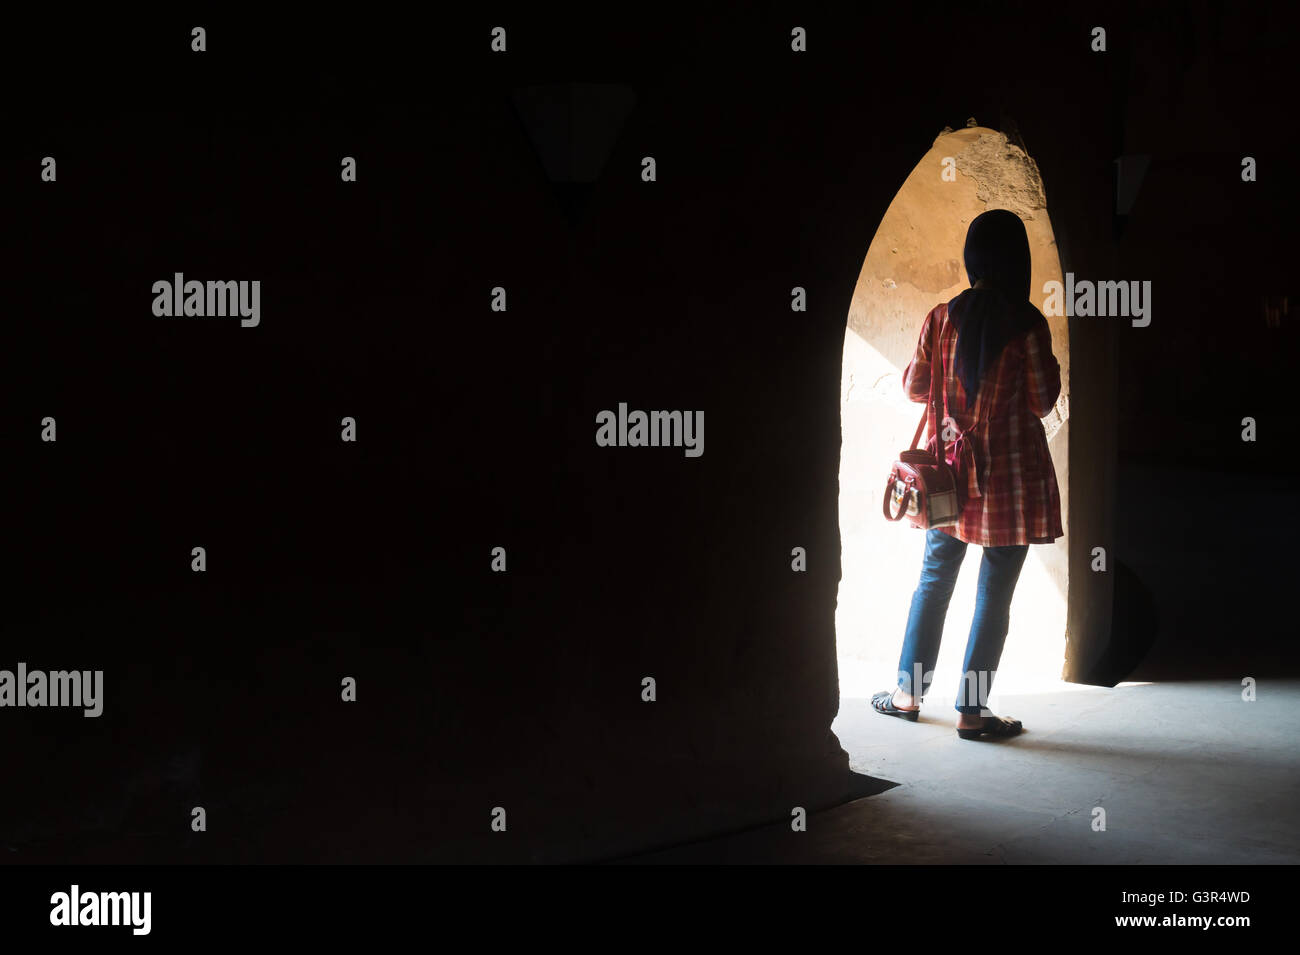 Hijab Women in front of hole - Stock Image